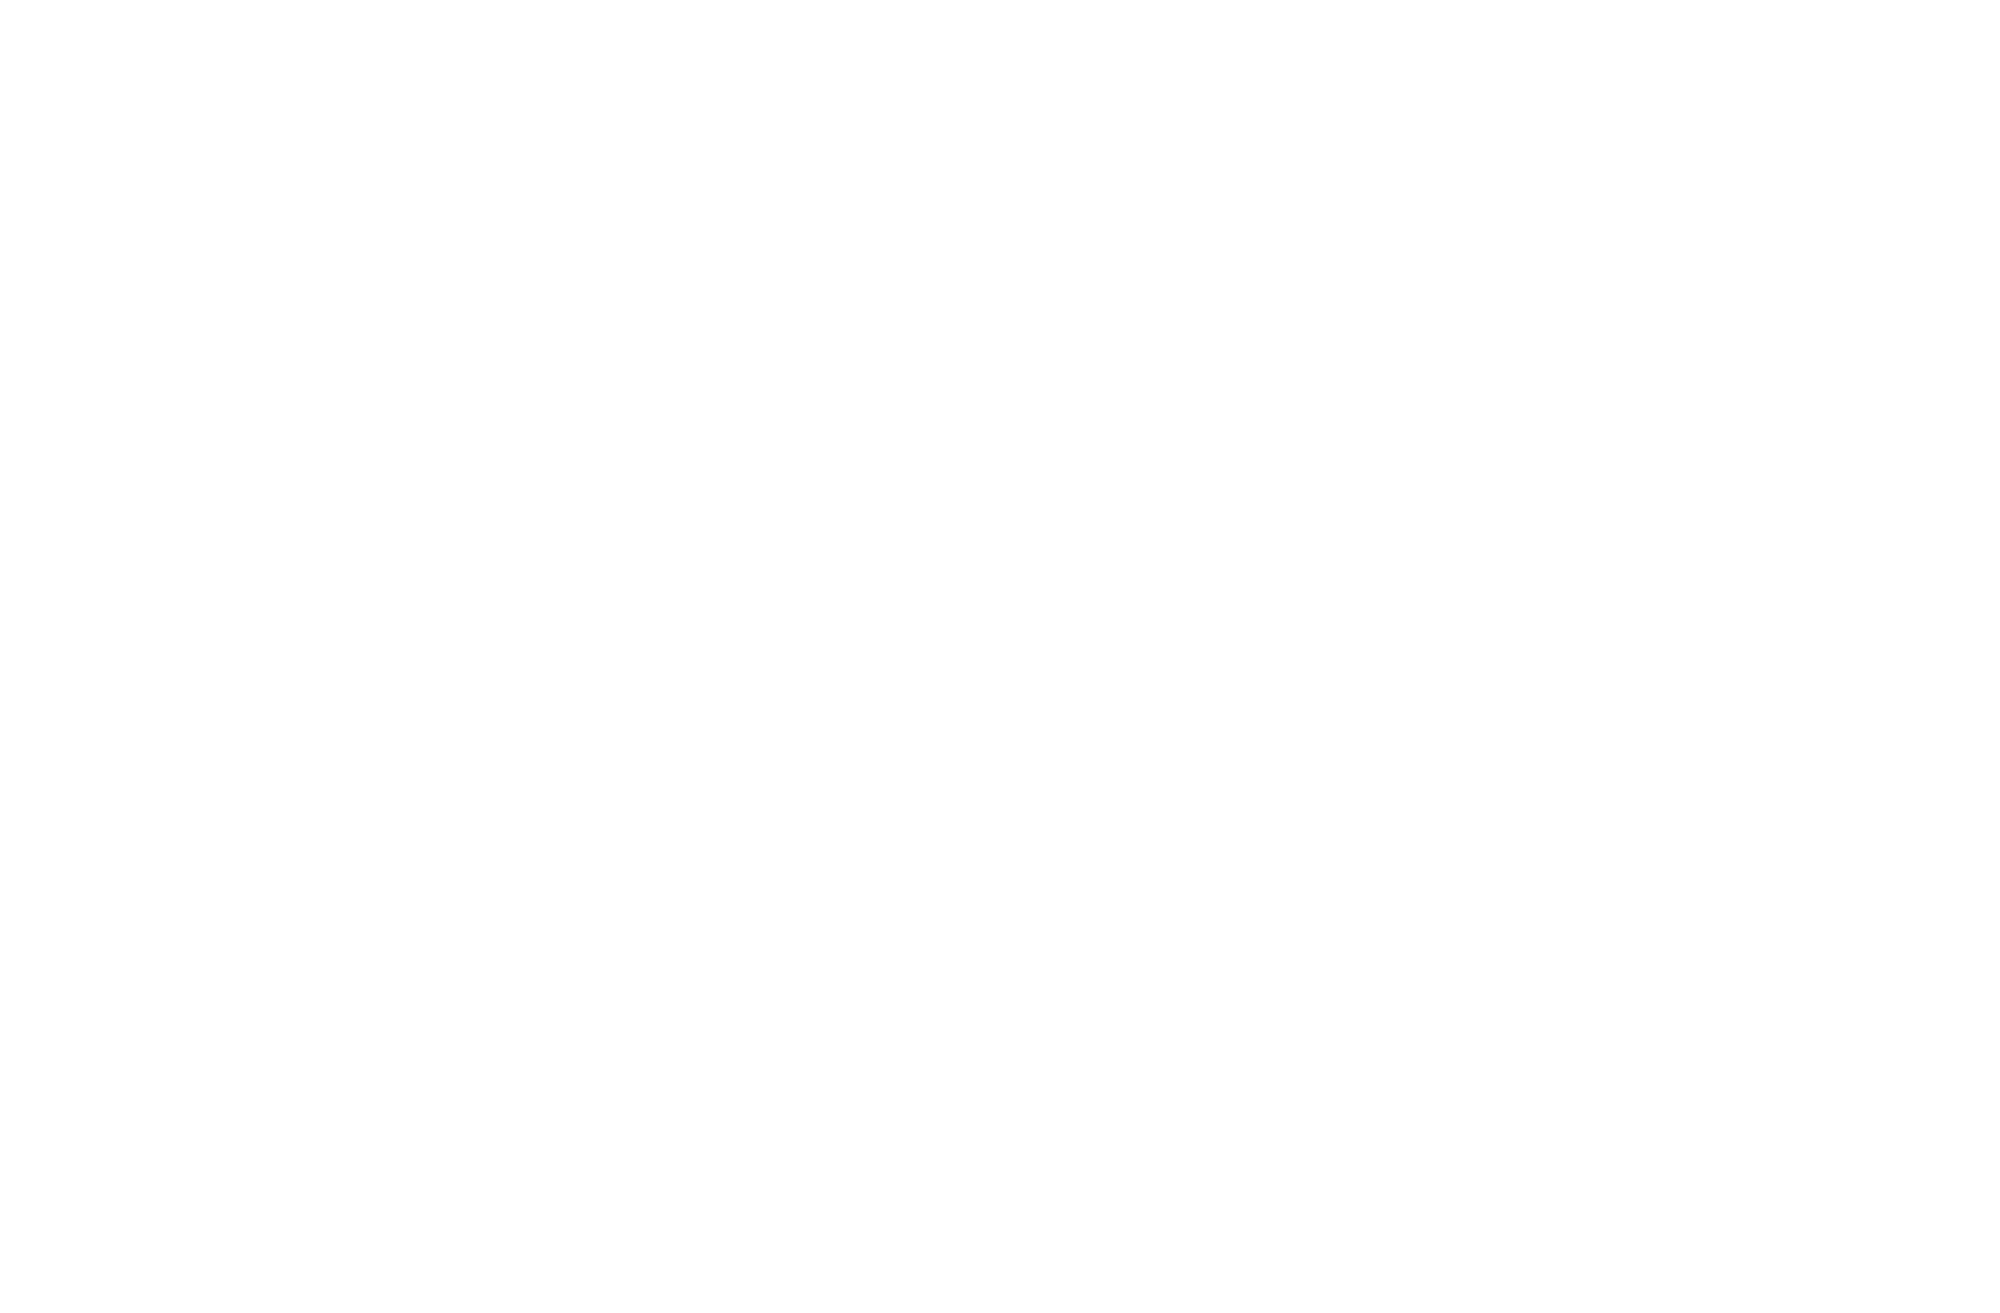 Stripes svg #4, Download drawings